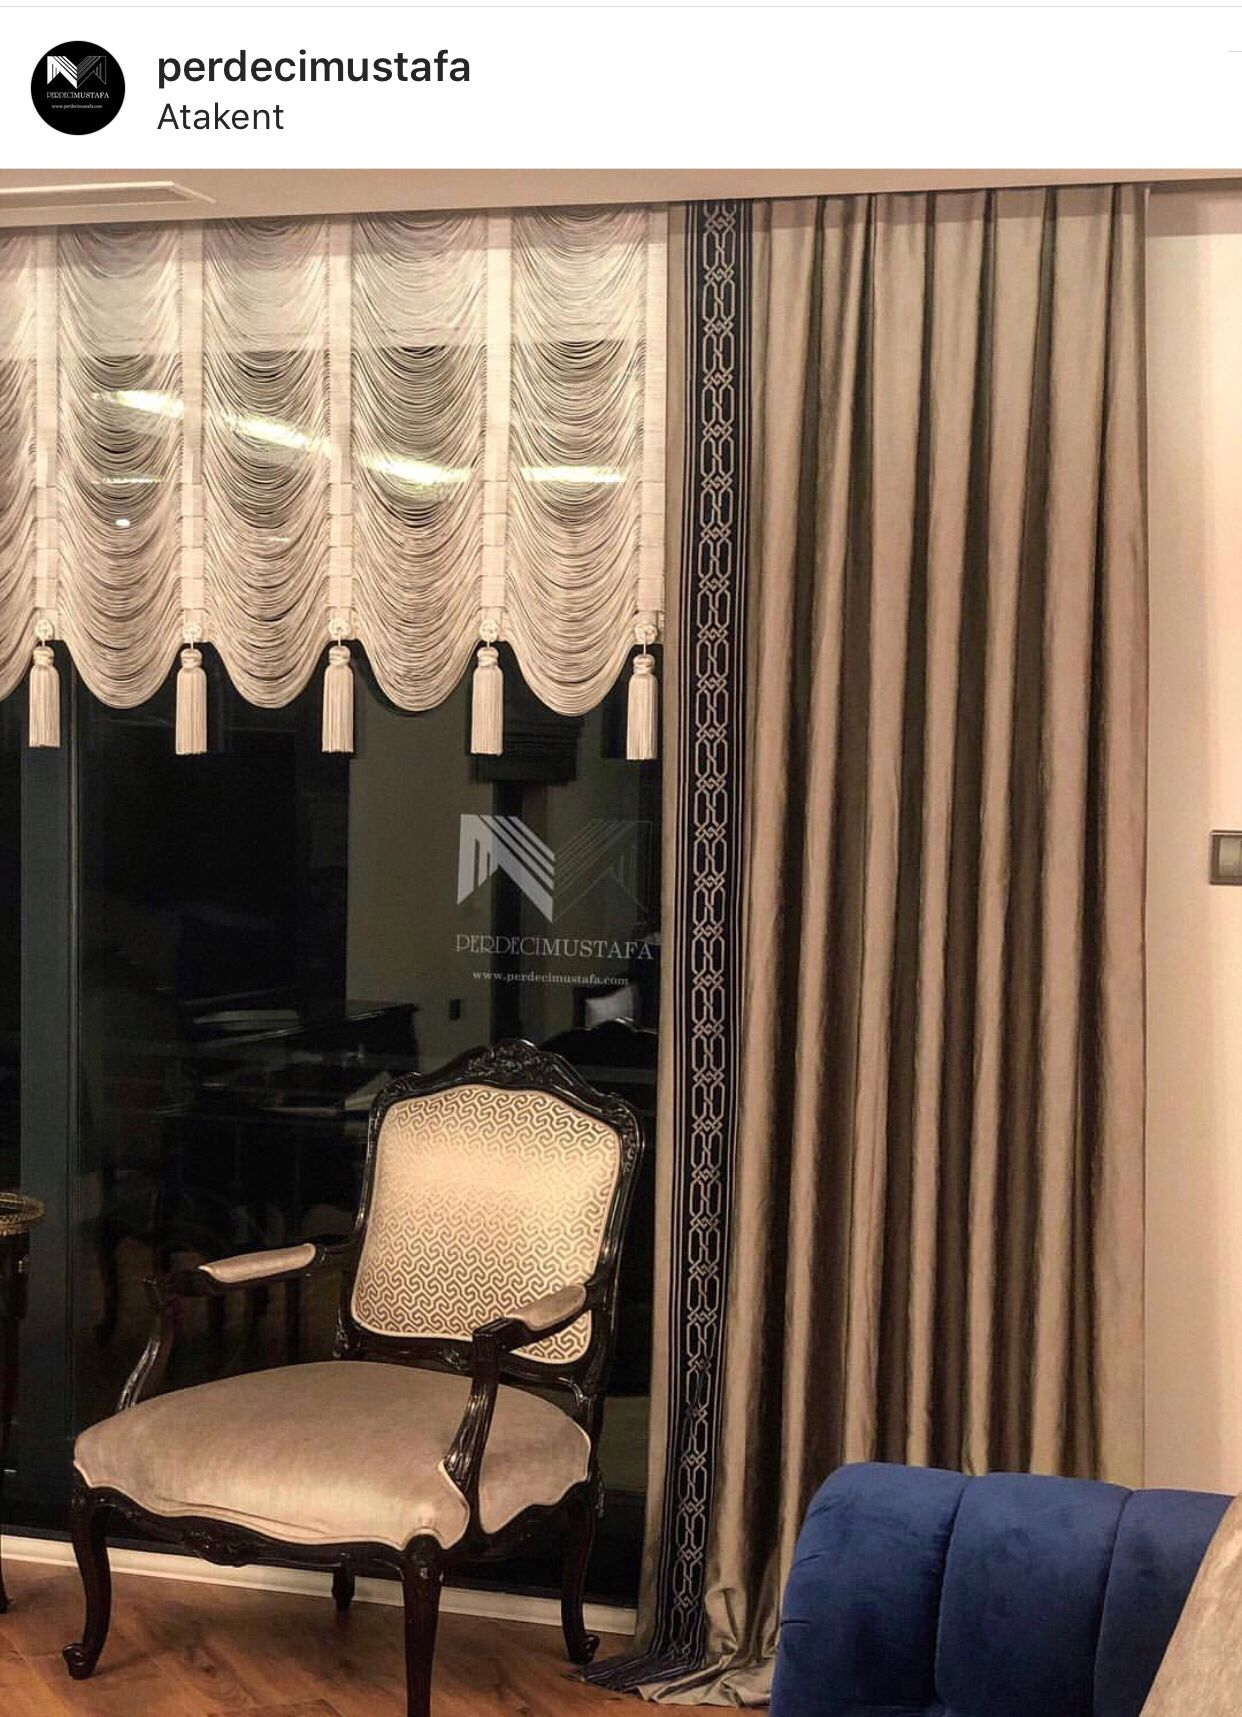 Window dressing ideas for arched windows  pin by cristiana cardoso dos santos on cortinas in   pinterest